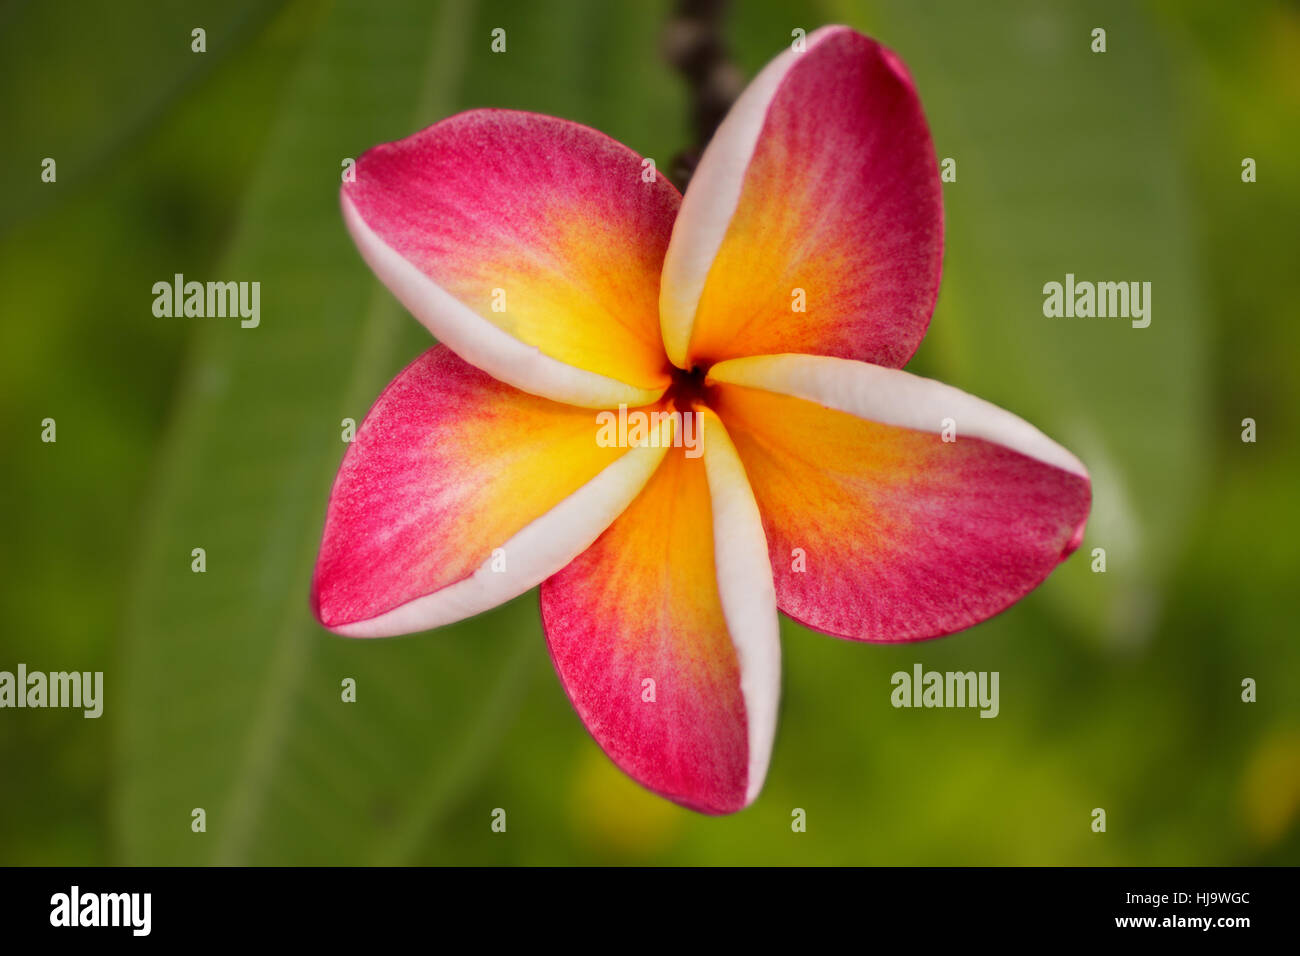 one five petal pink flower frangipani ( plumeria ) with yellow center on the green background. close up. top up - Stock Image